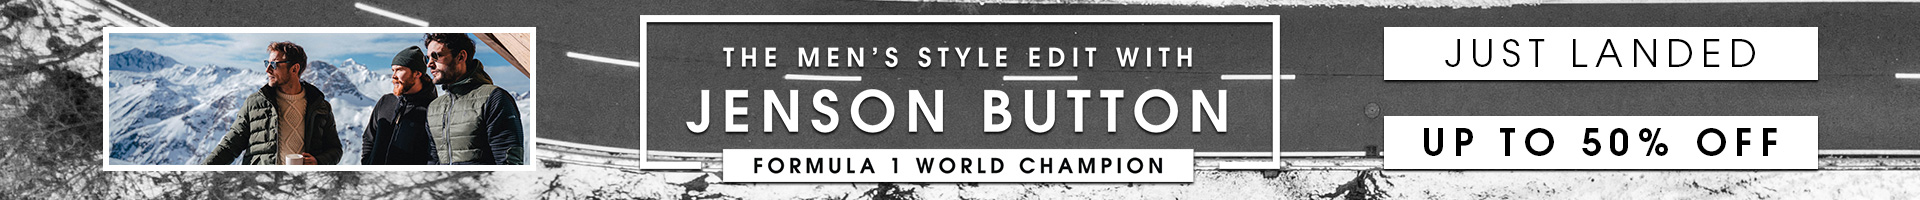 Jenson Button Up To 50% Off